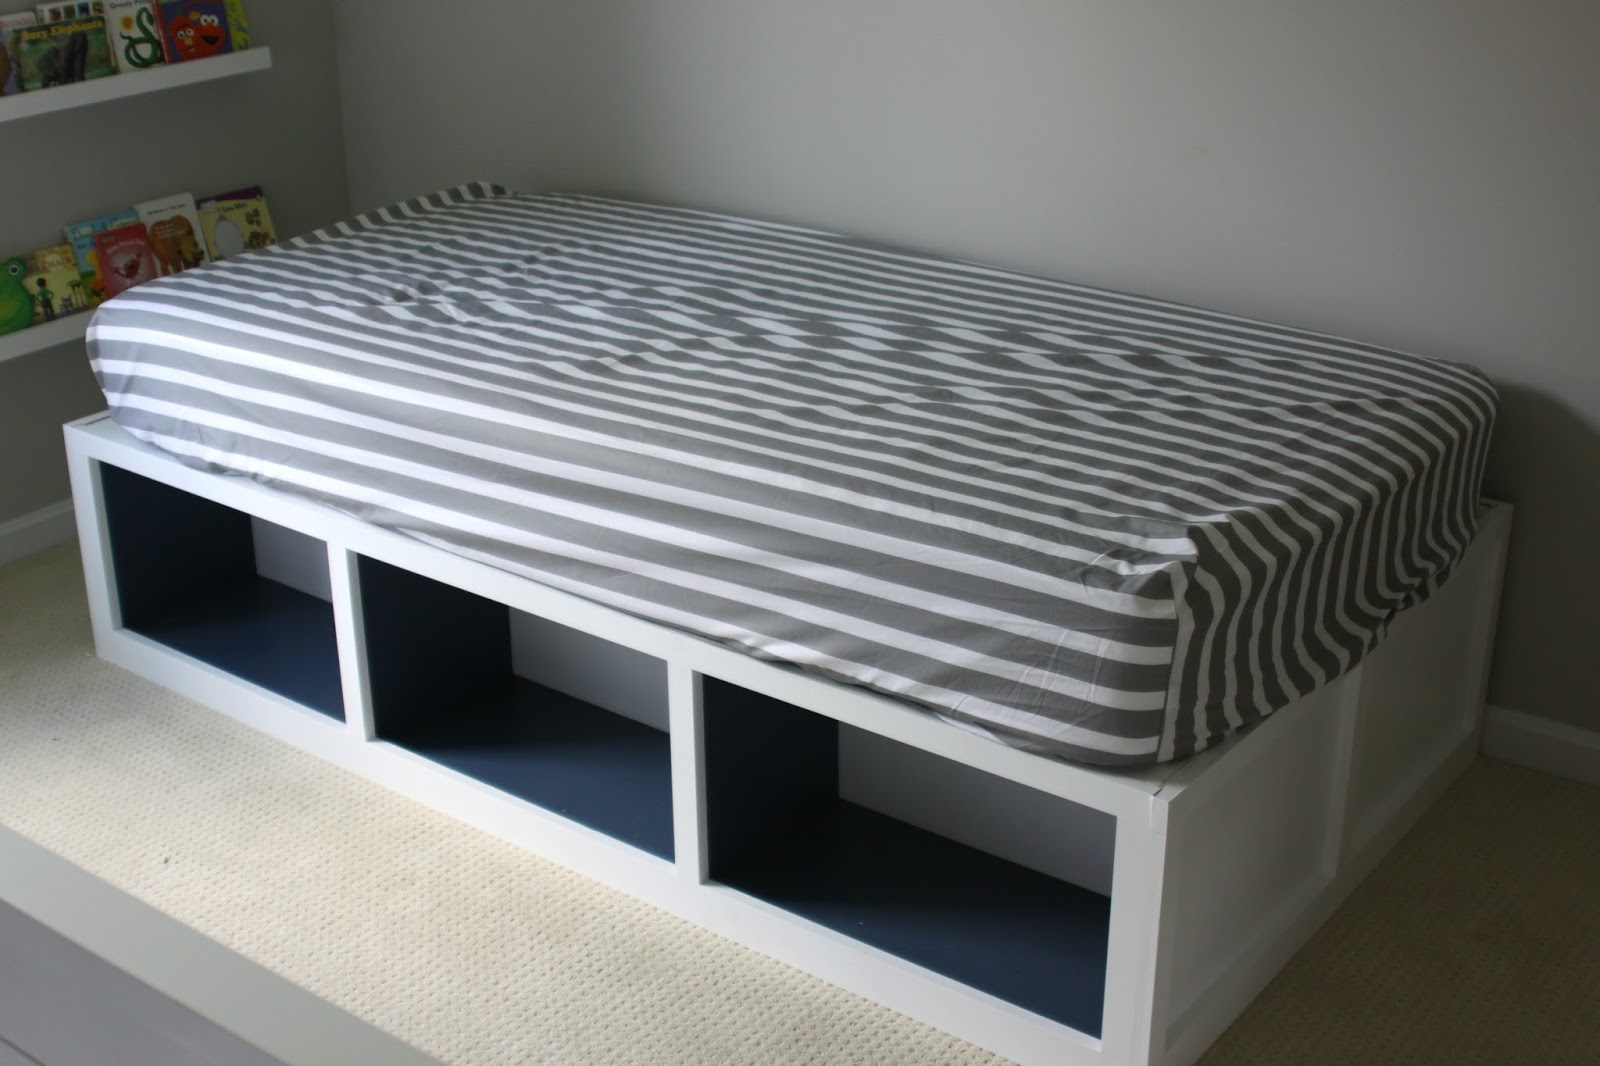 Diy Inspiration Daybeds: Our Pinteresting Family: PB Inspired Day Bed With Ana